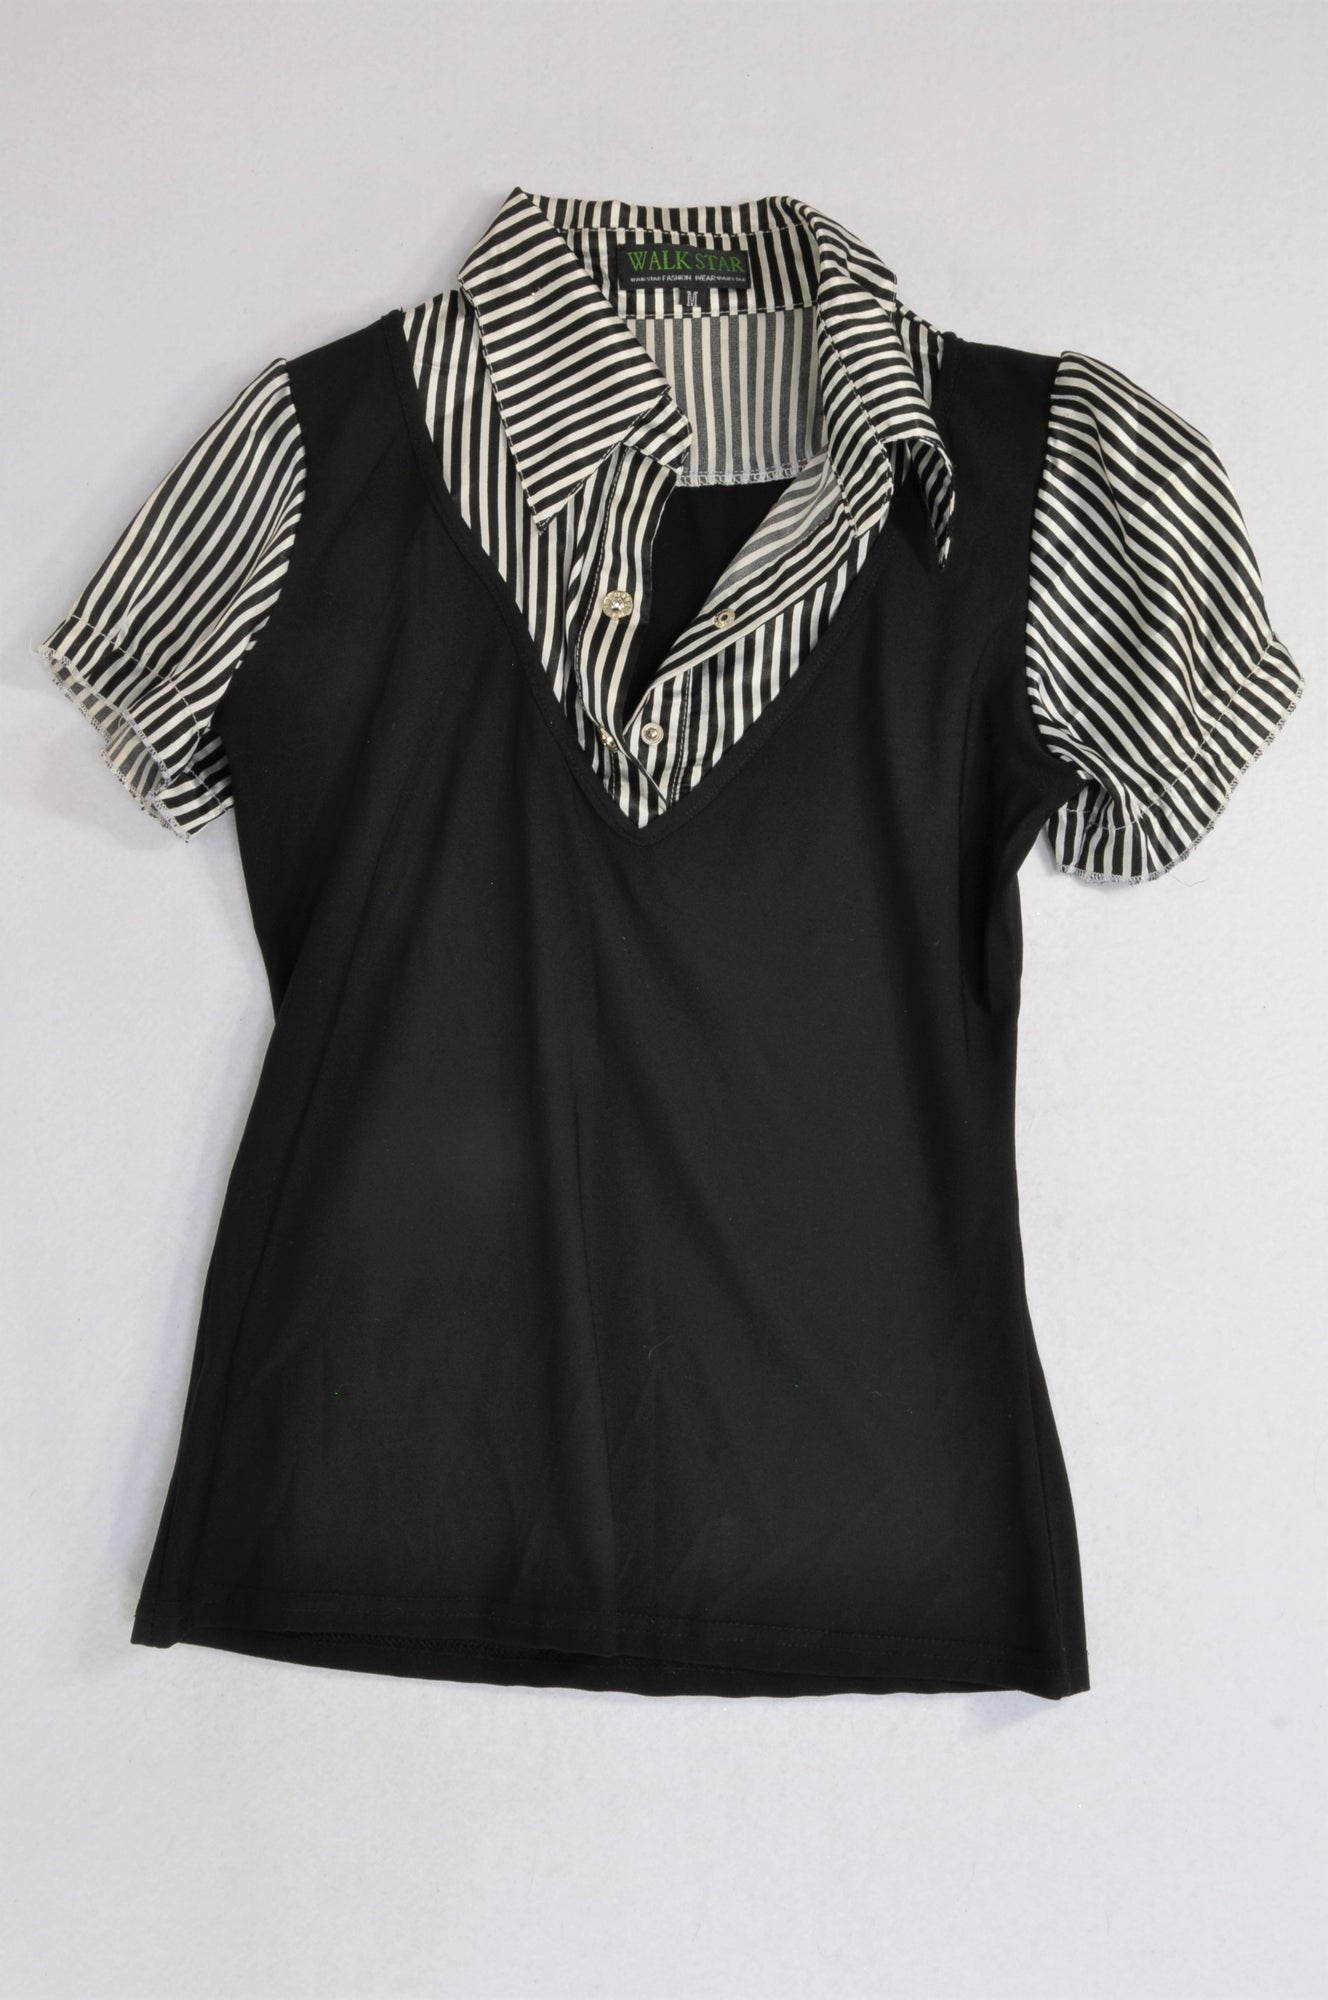 Walk Star Black Pinstripe Detail Blouse Women Size M